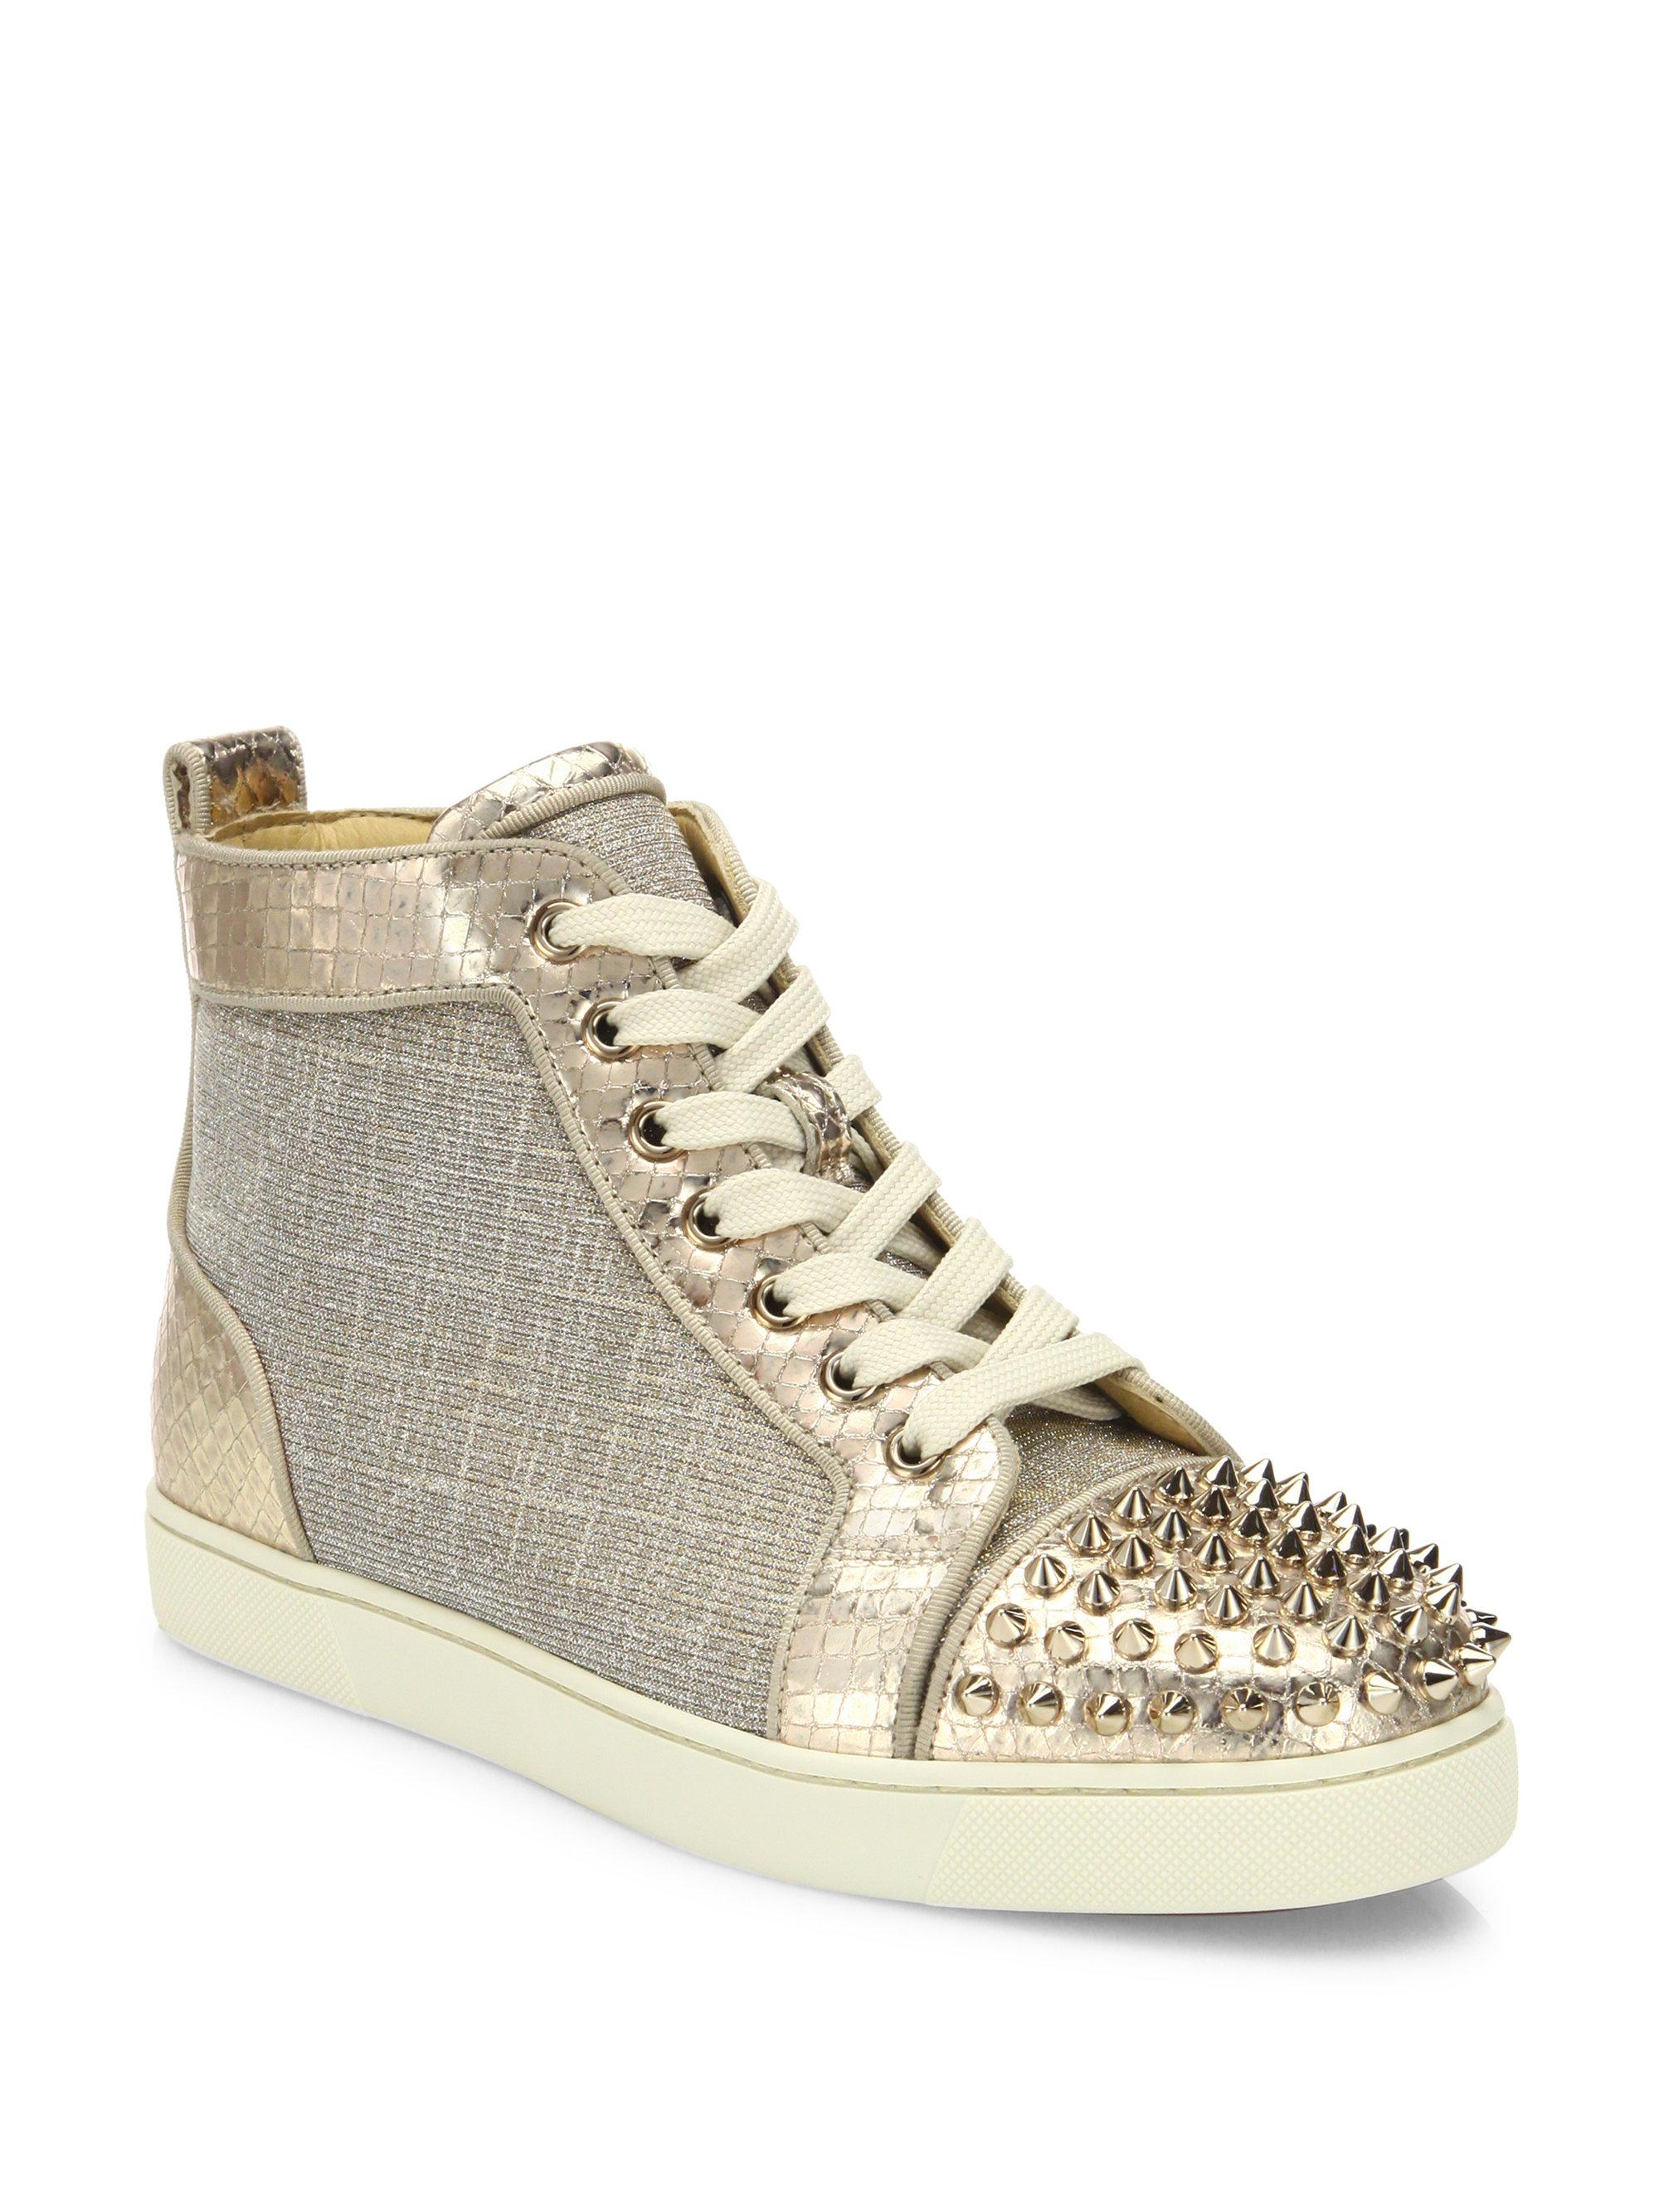 6858a2875095 Gallery. Previously sold at: Saks Fifth Avenue · Women's Christian  Louboutin Spike Shoes